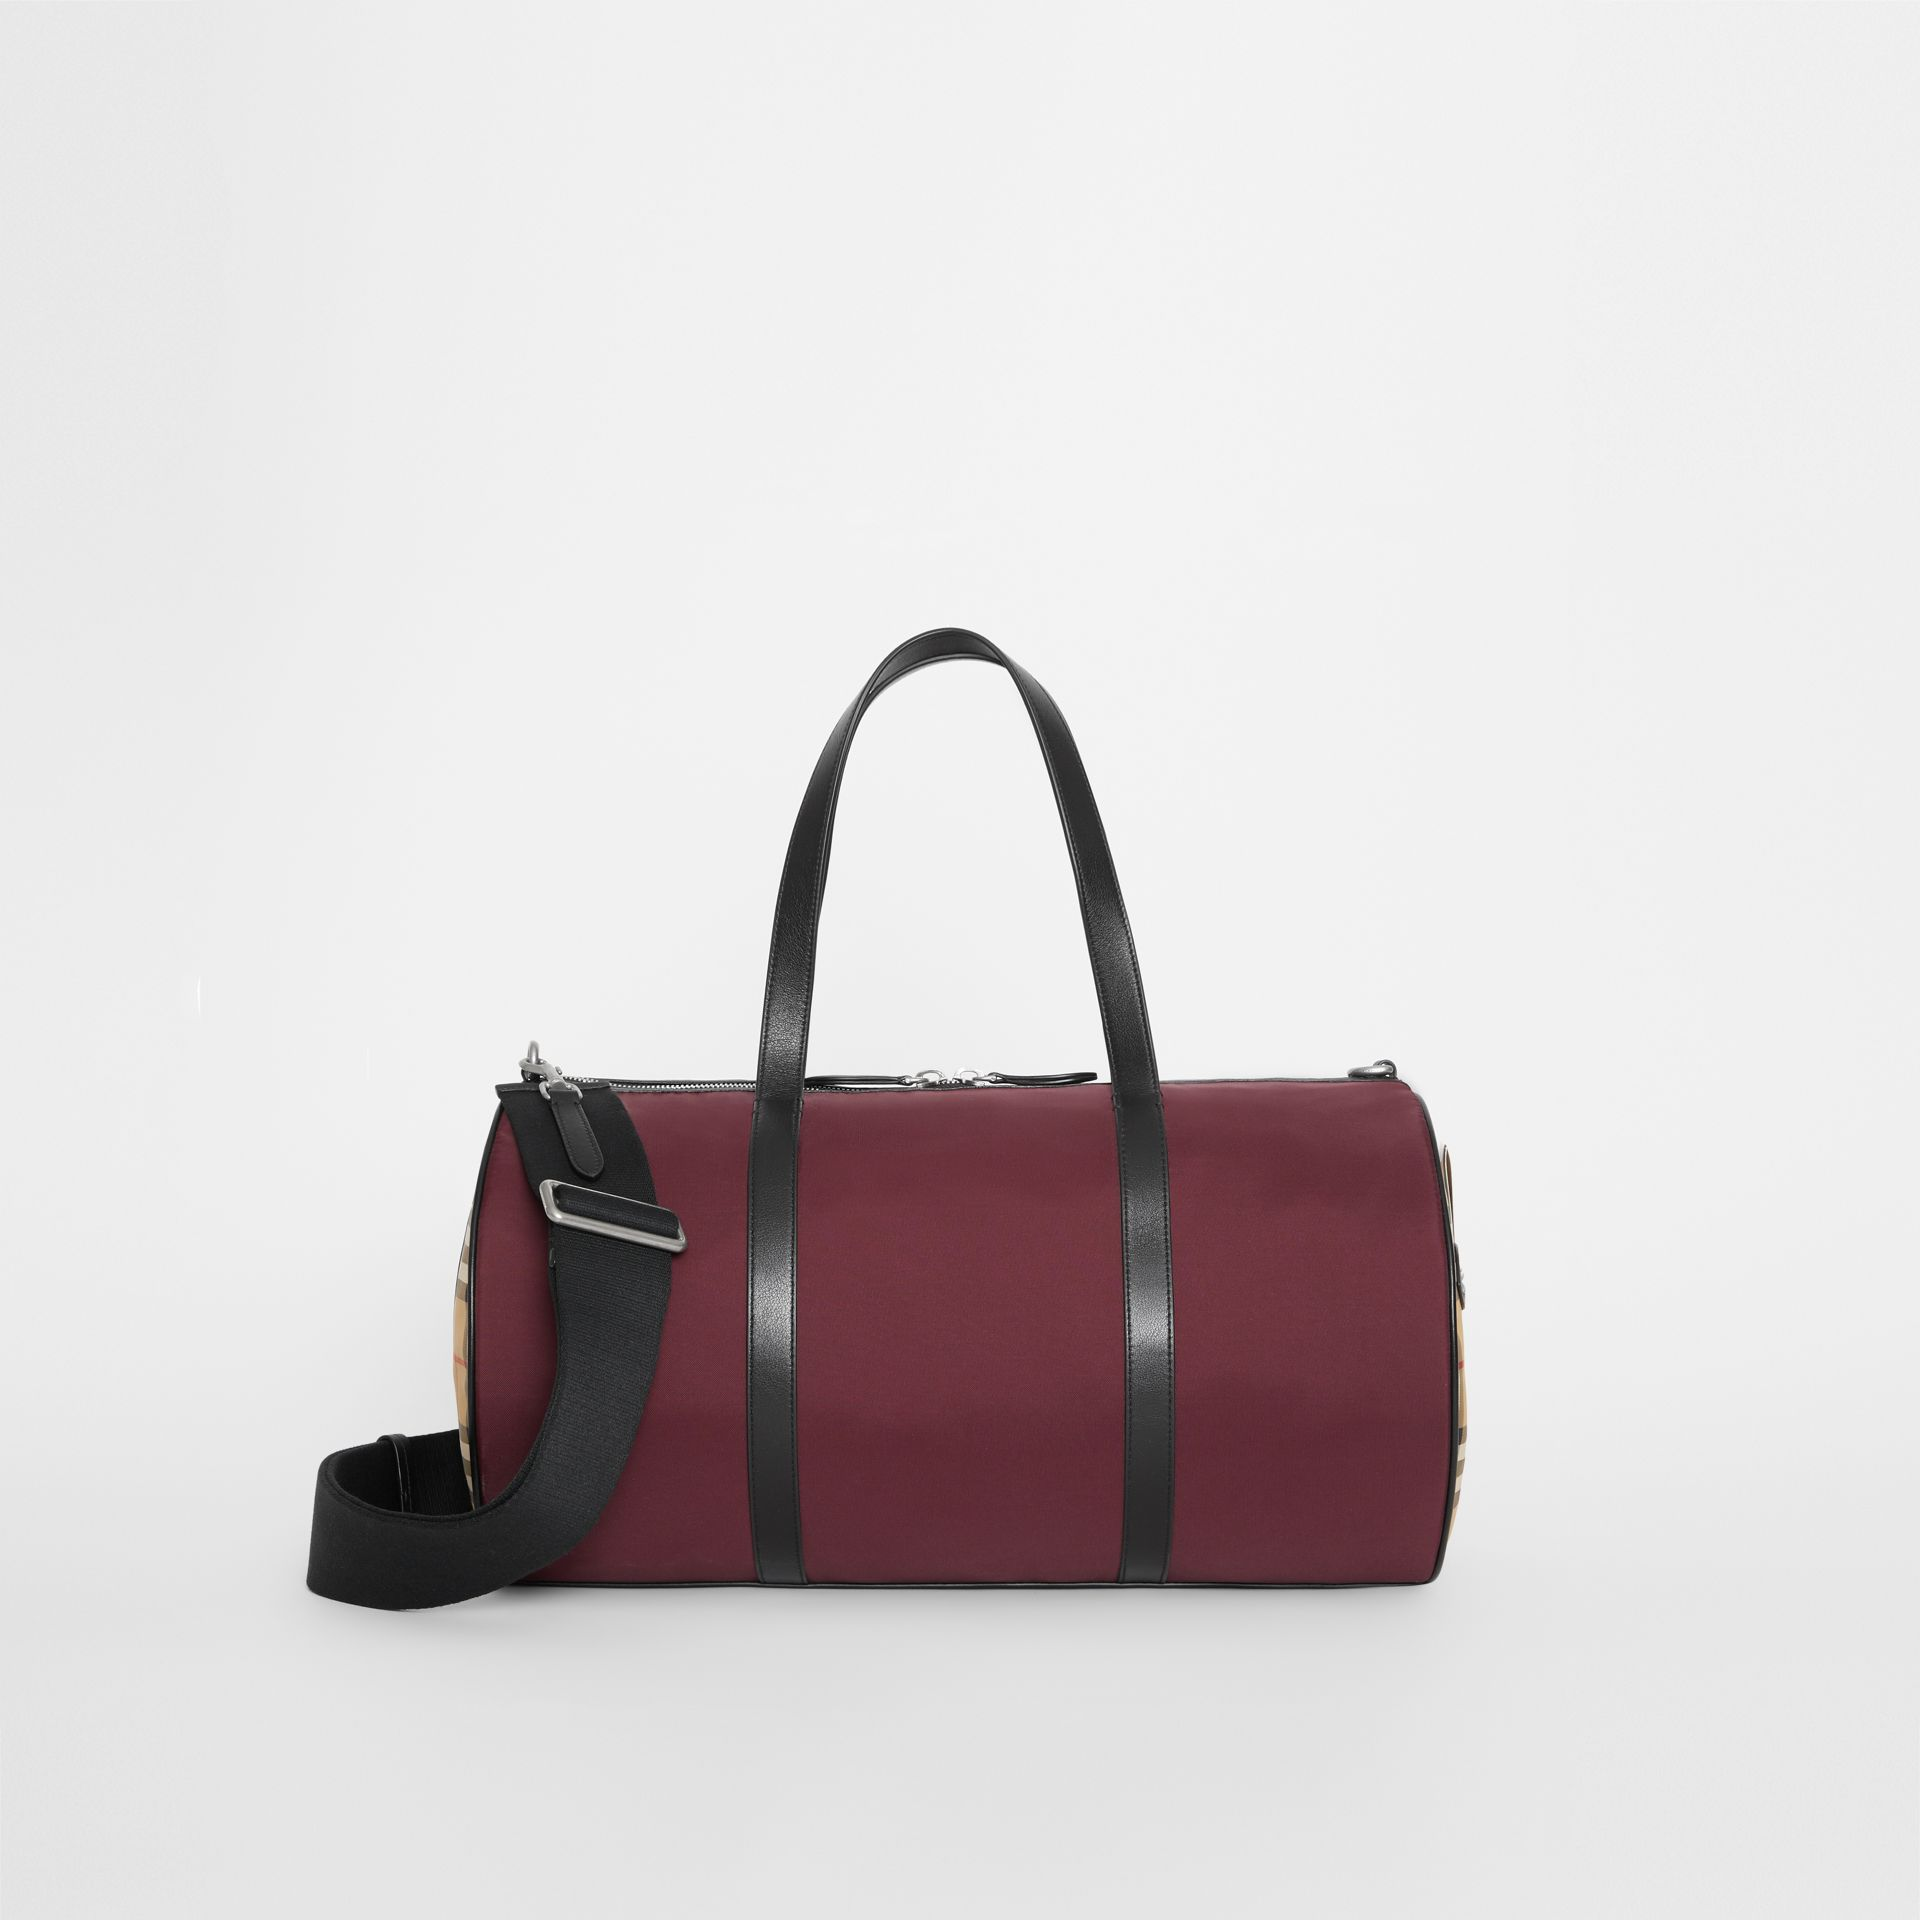 Sac The Barrel moyen en nylon et à motif Vintage check (Oxblood) - Homme | Burberry - photo de la galerie 0